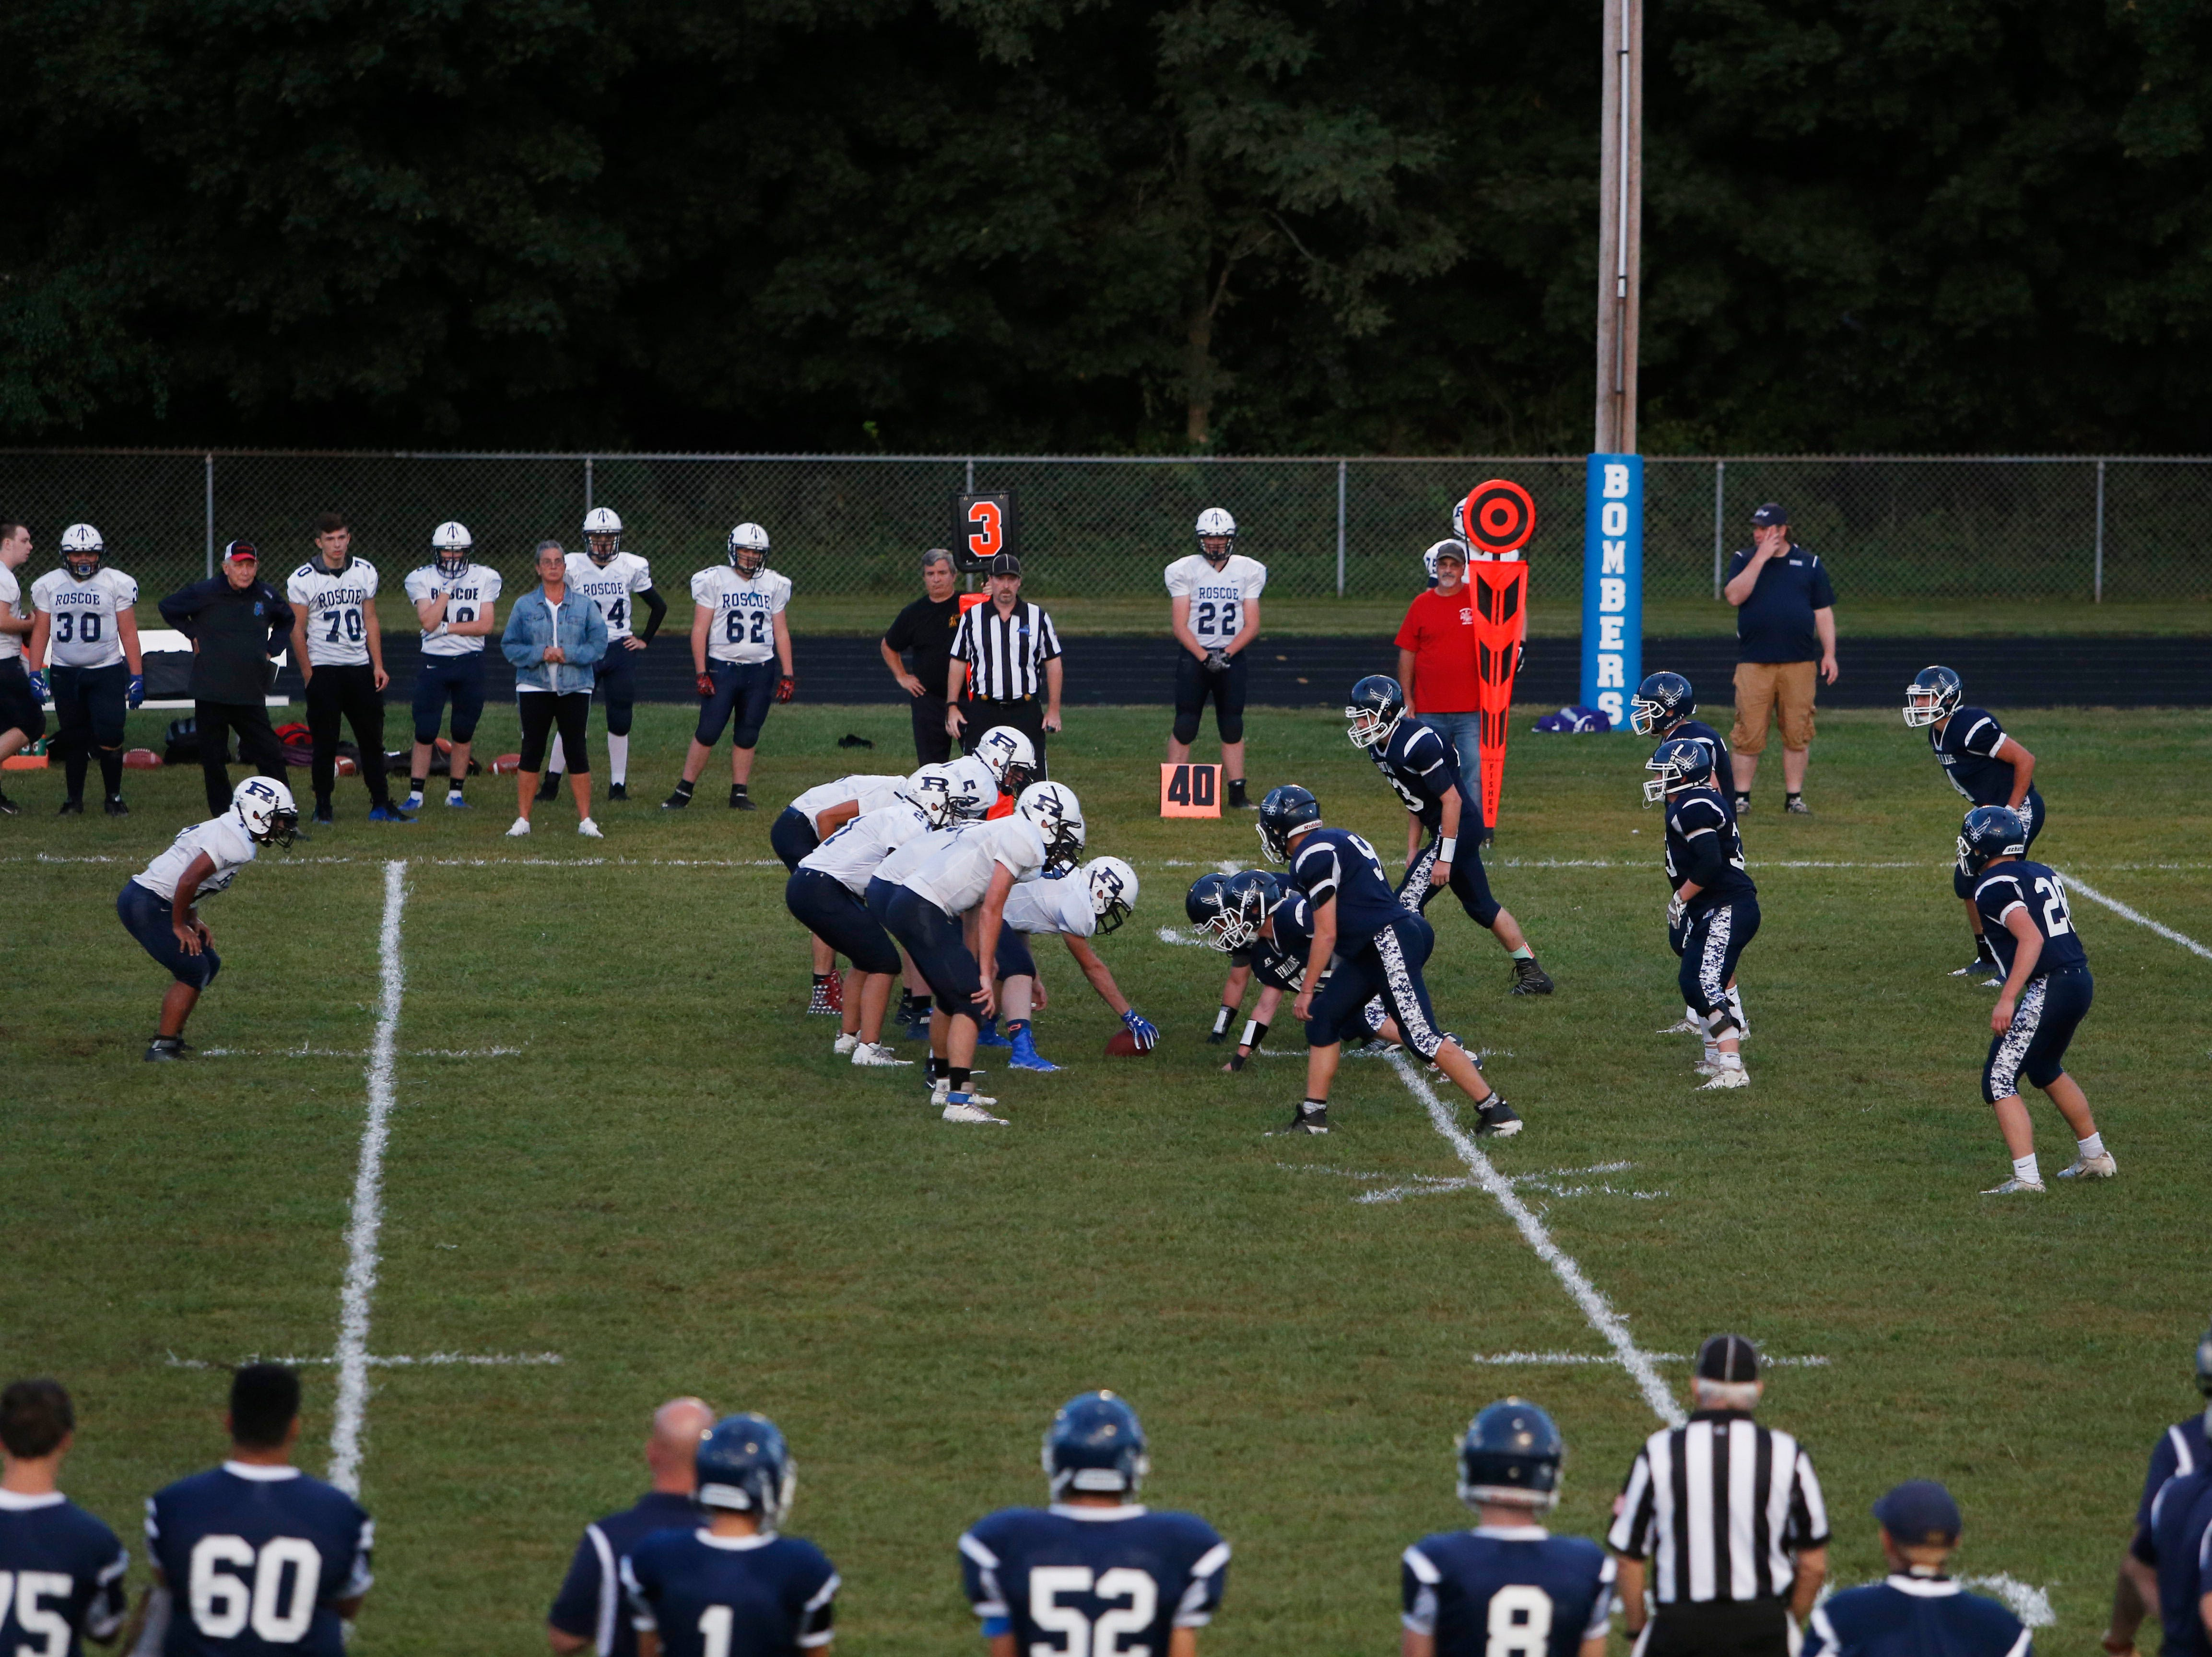 Pine Plains and Roscoe line up before the snap during Friday's game at Stissing Mountain High School on September 7, 2018. Friday marks the start of the 8-man football season.